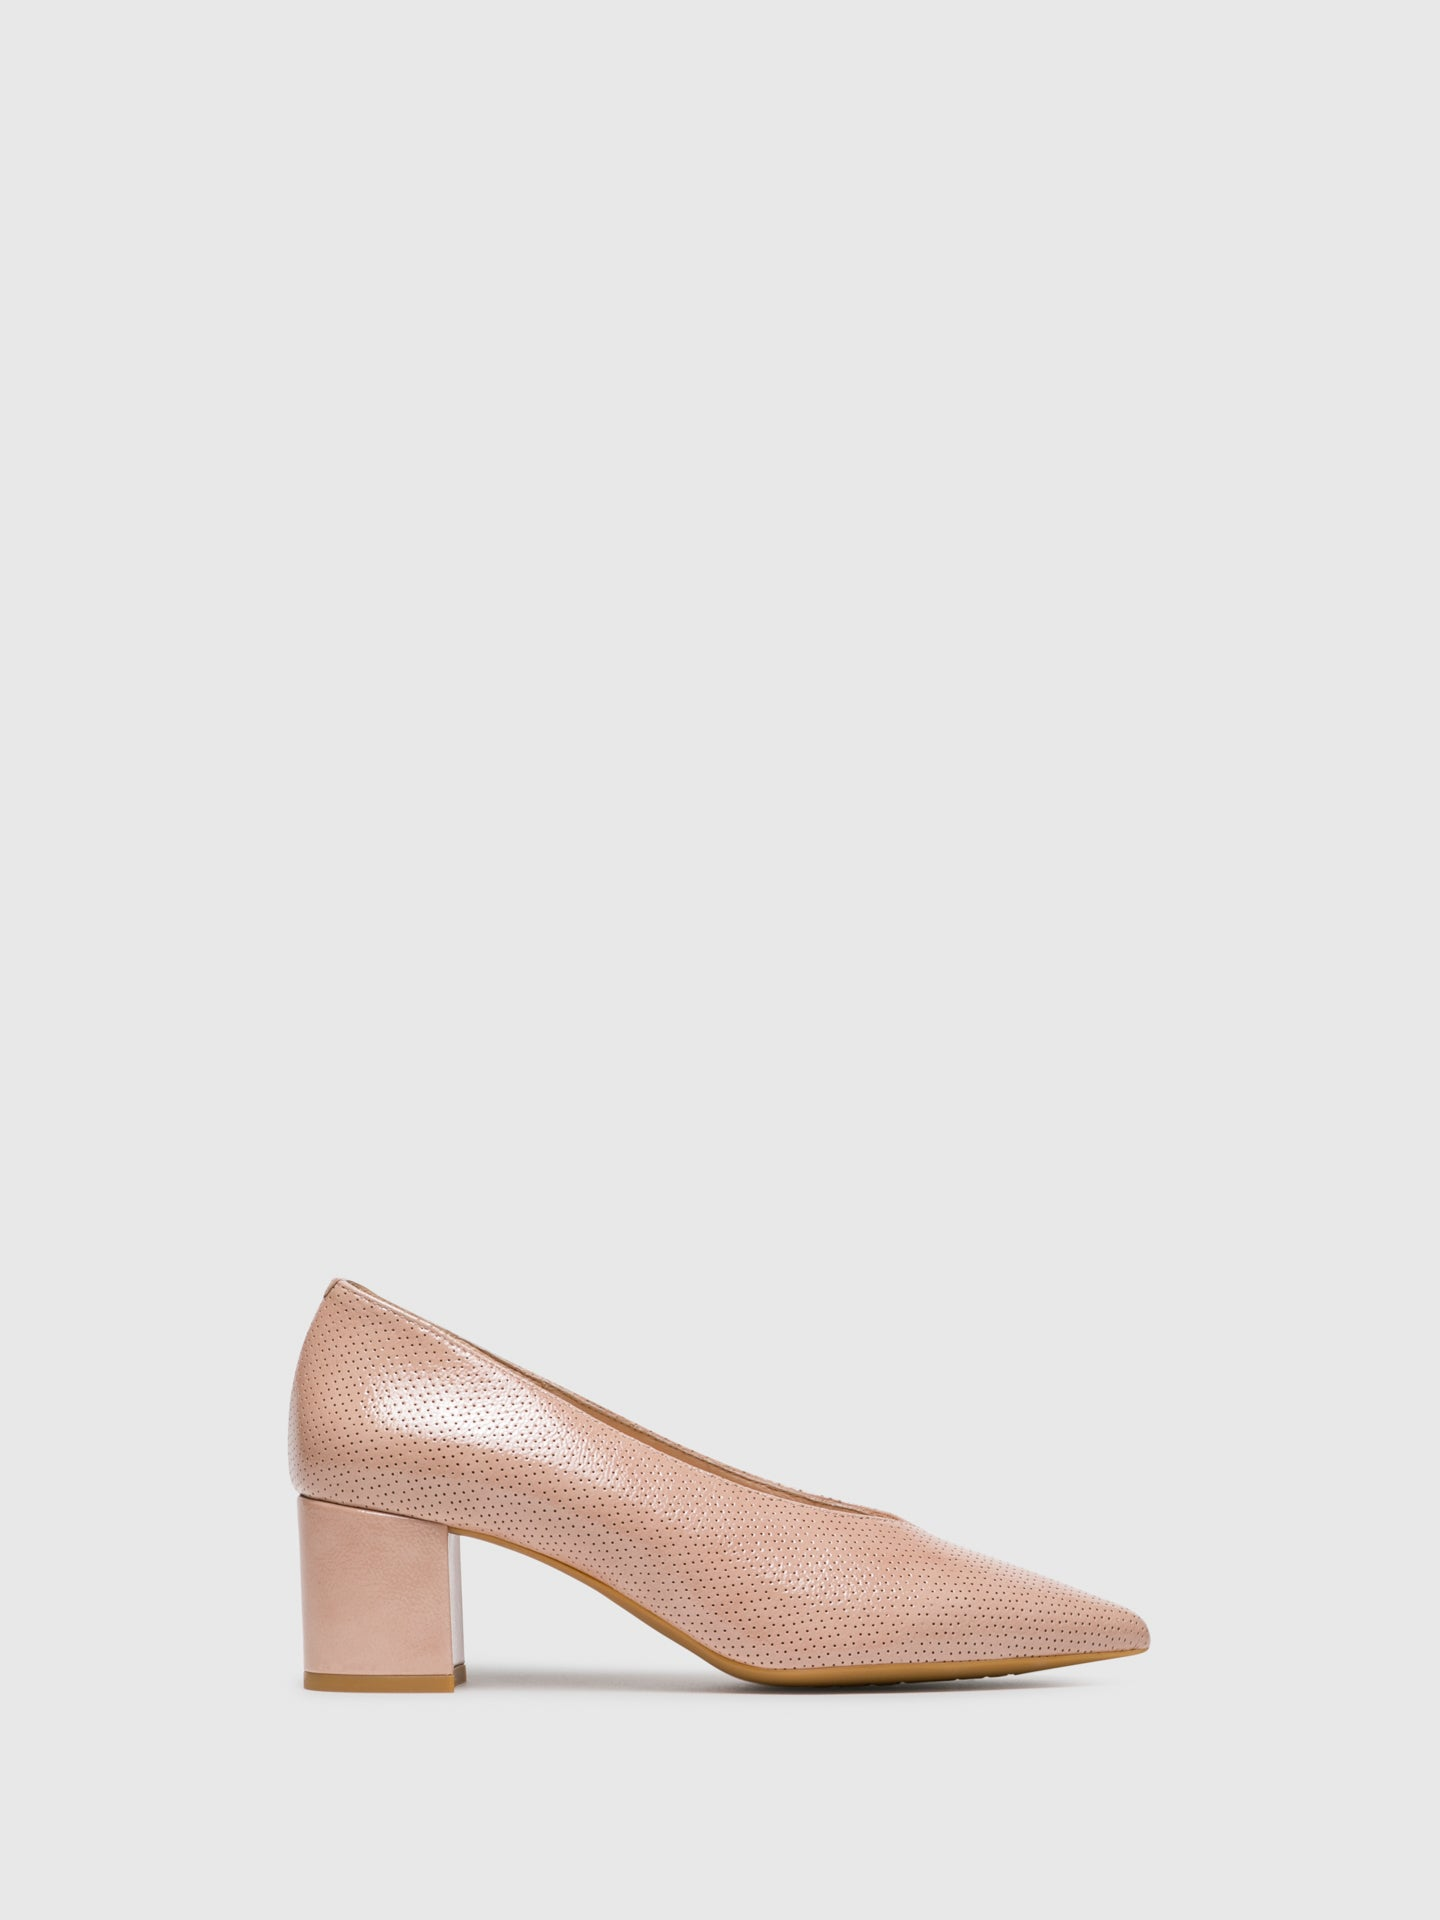 Sofia Costa Pink Pointed Toe Shoes